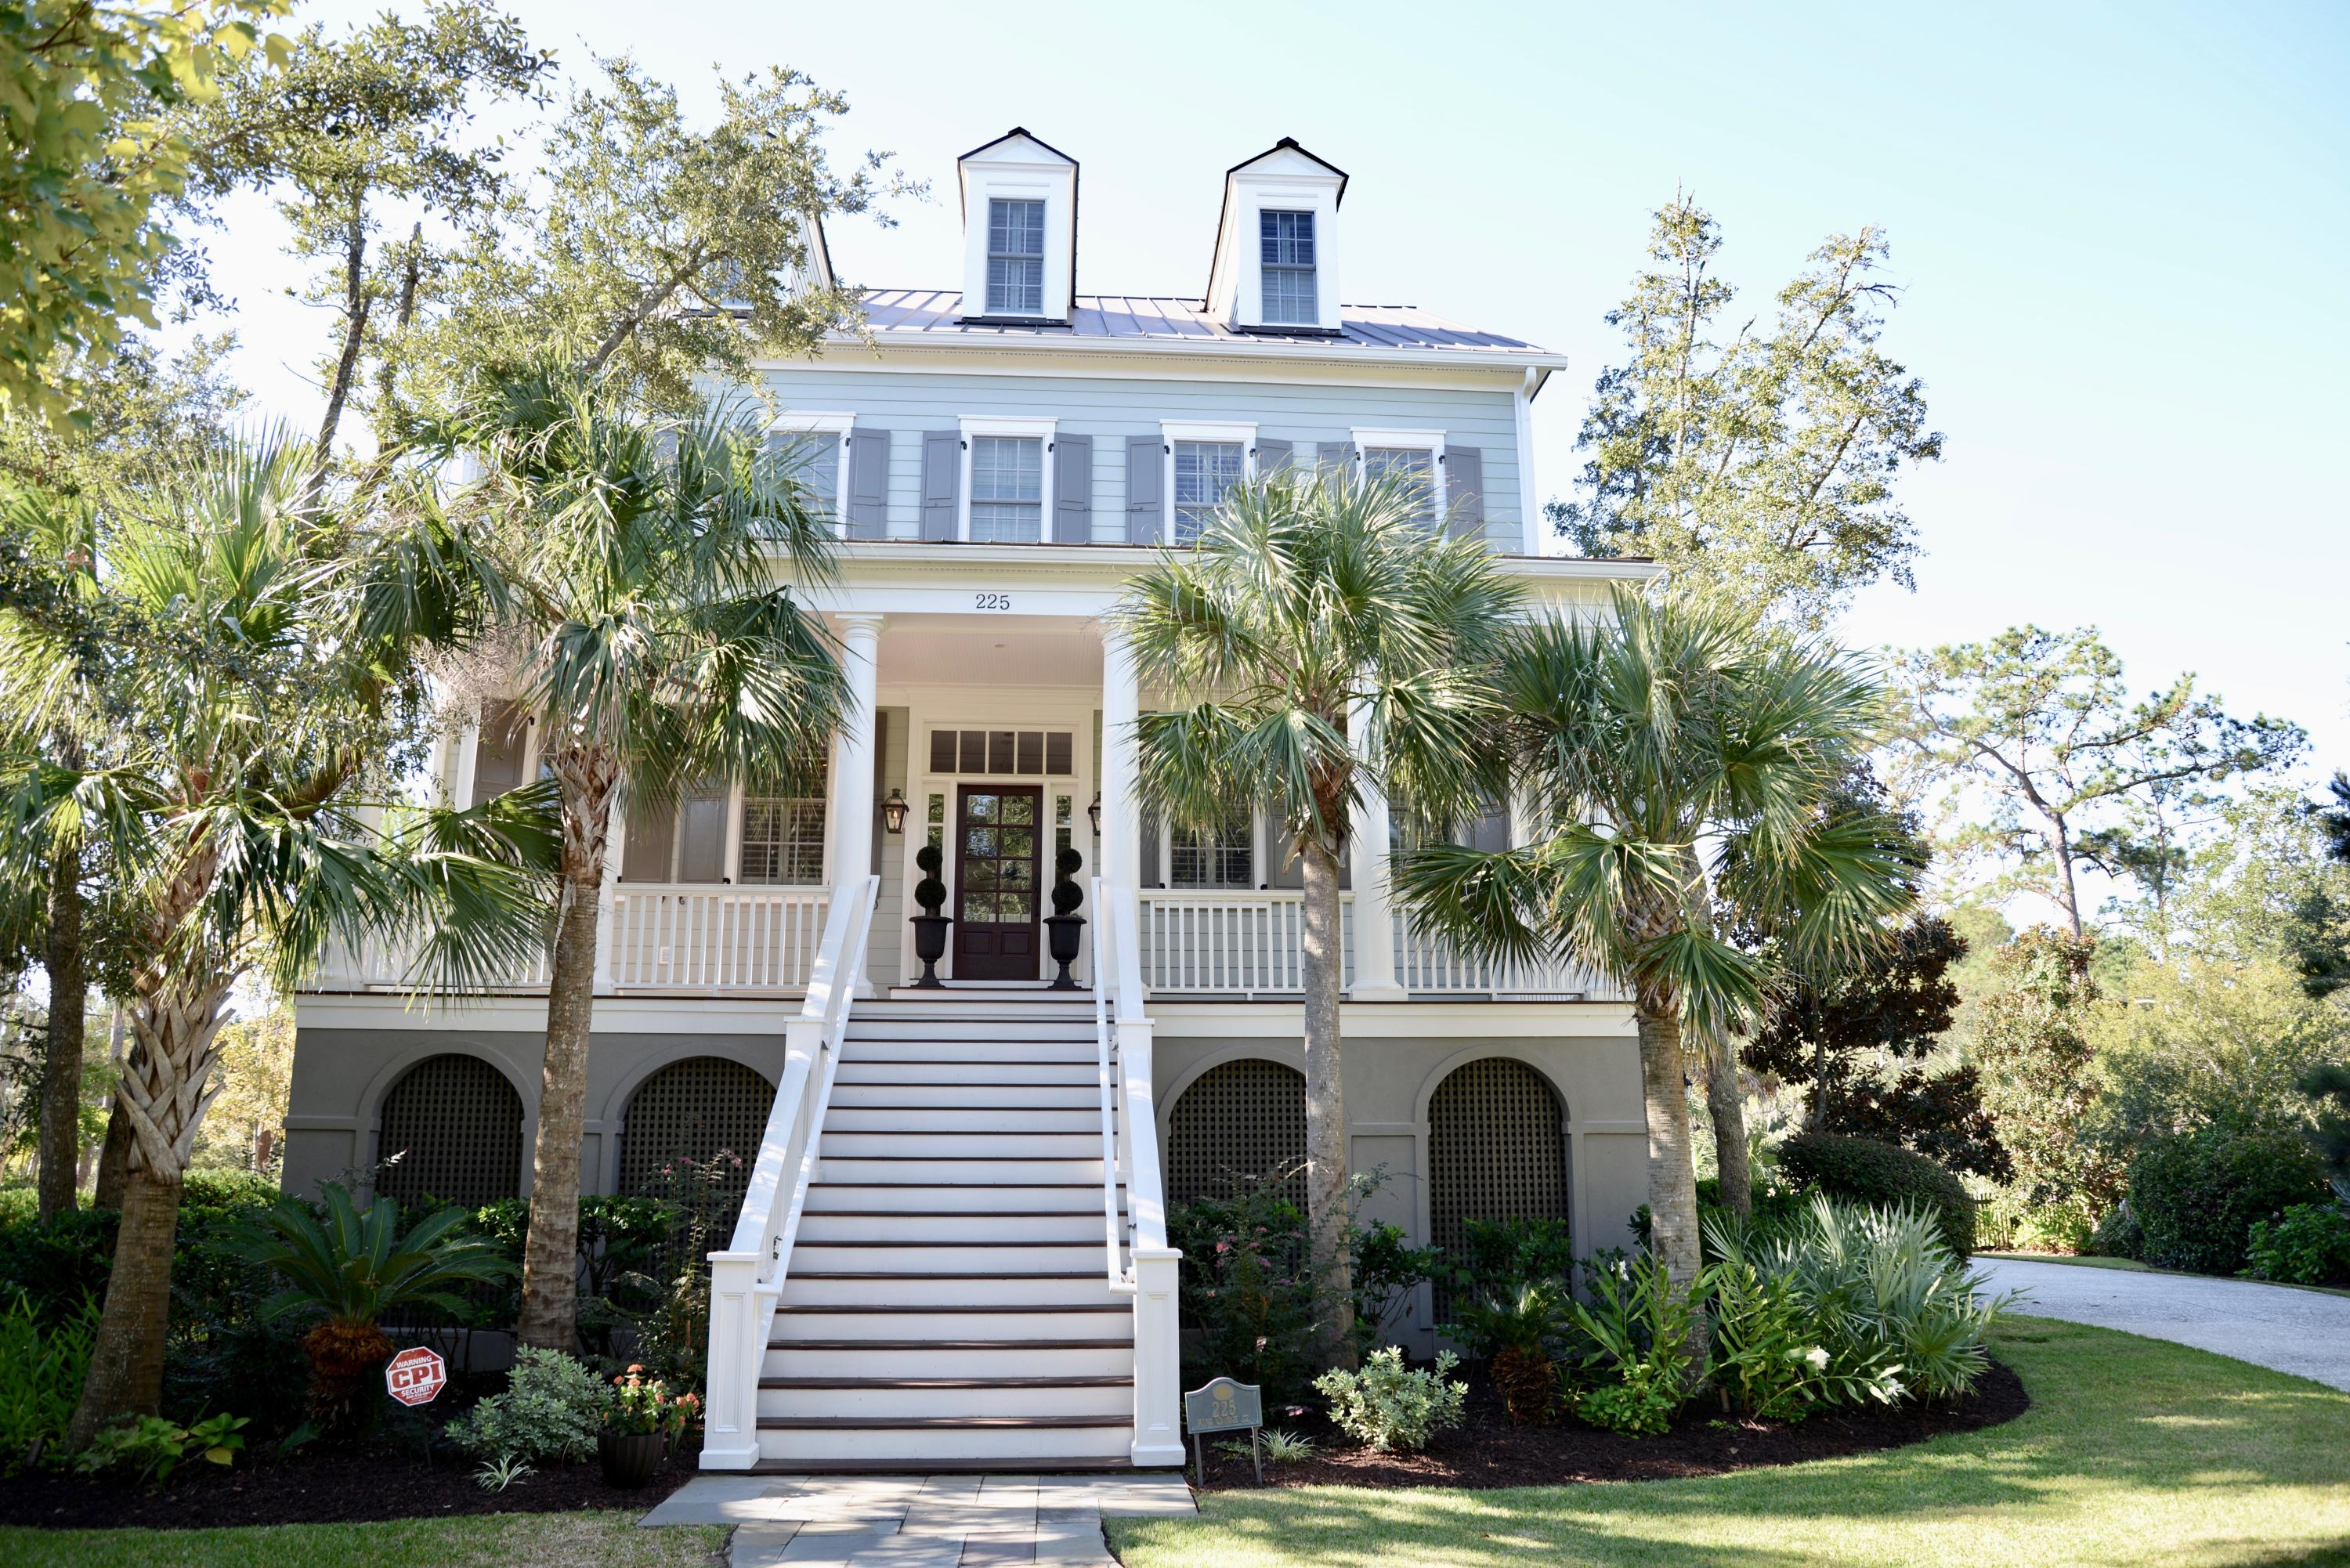 Photo of 225 King George St, Charleston, SC 29492